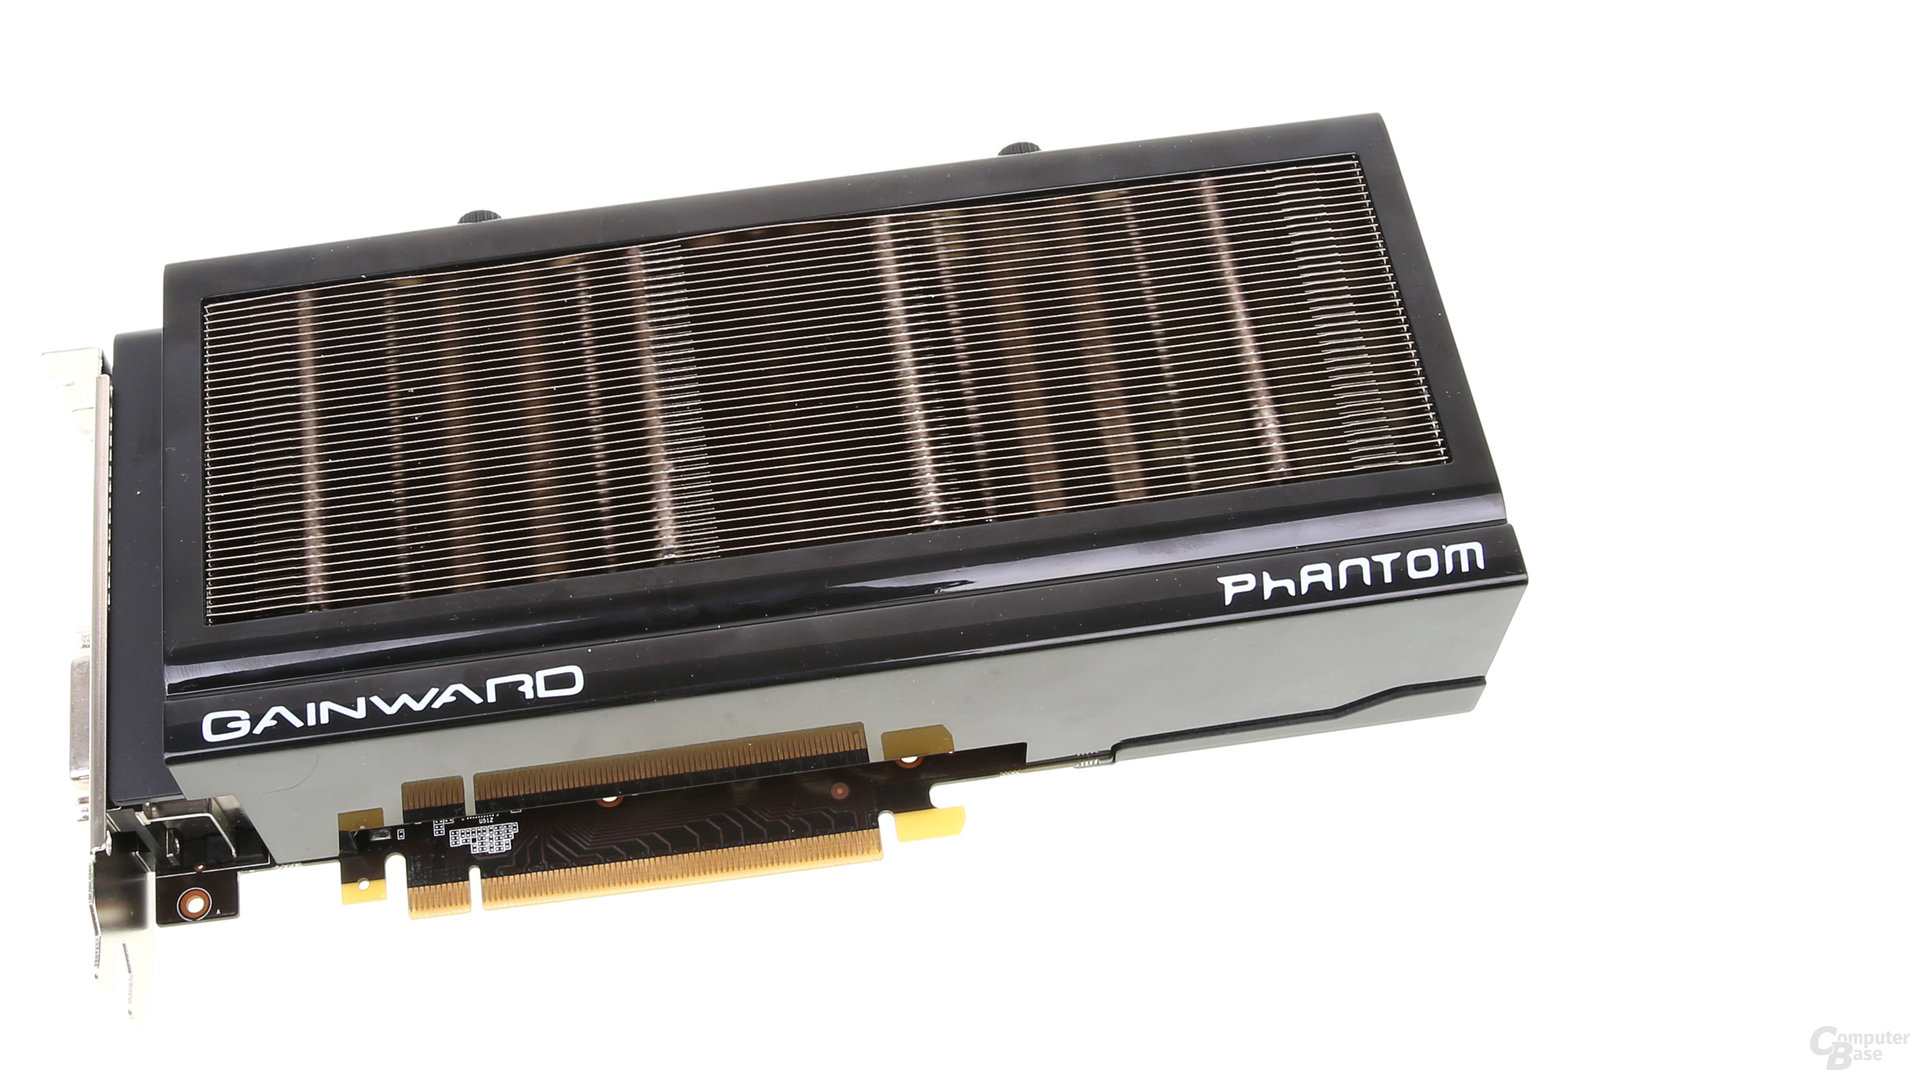 Gainward GeForce GTX 960 Phantom